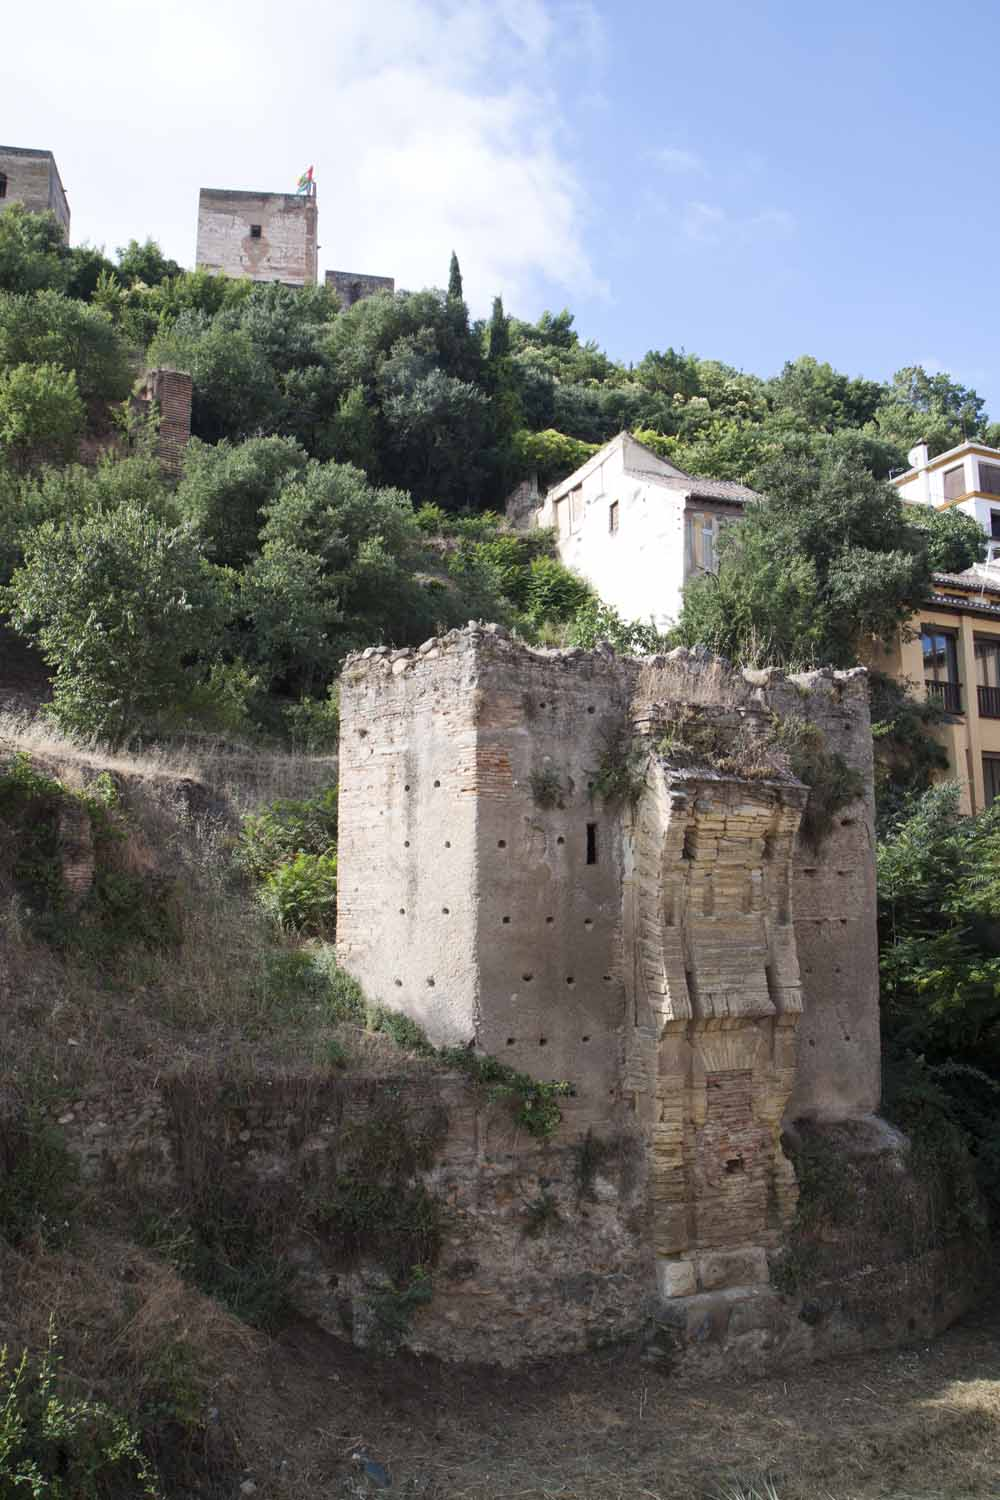 Remains of medieval bridge, River Darro, Granada